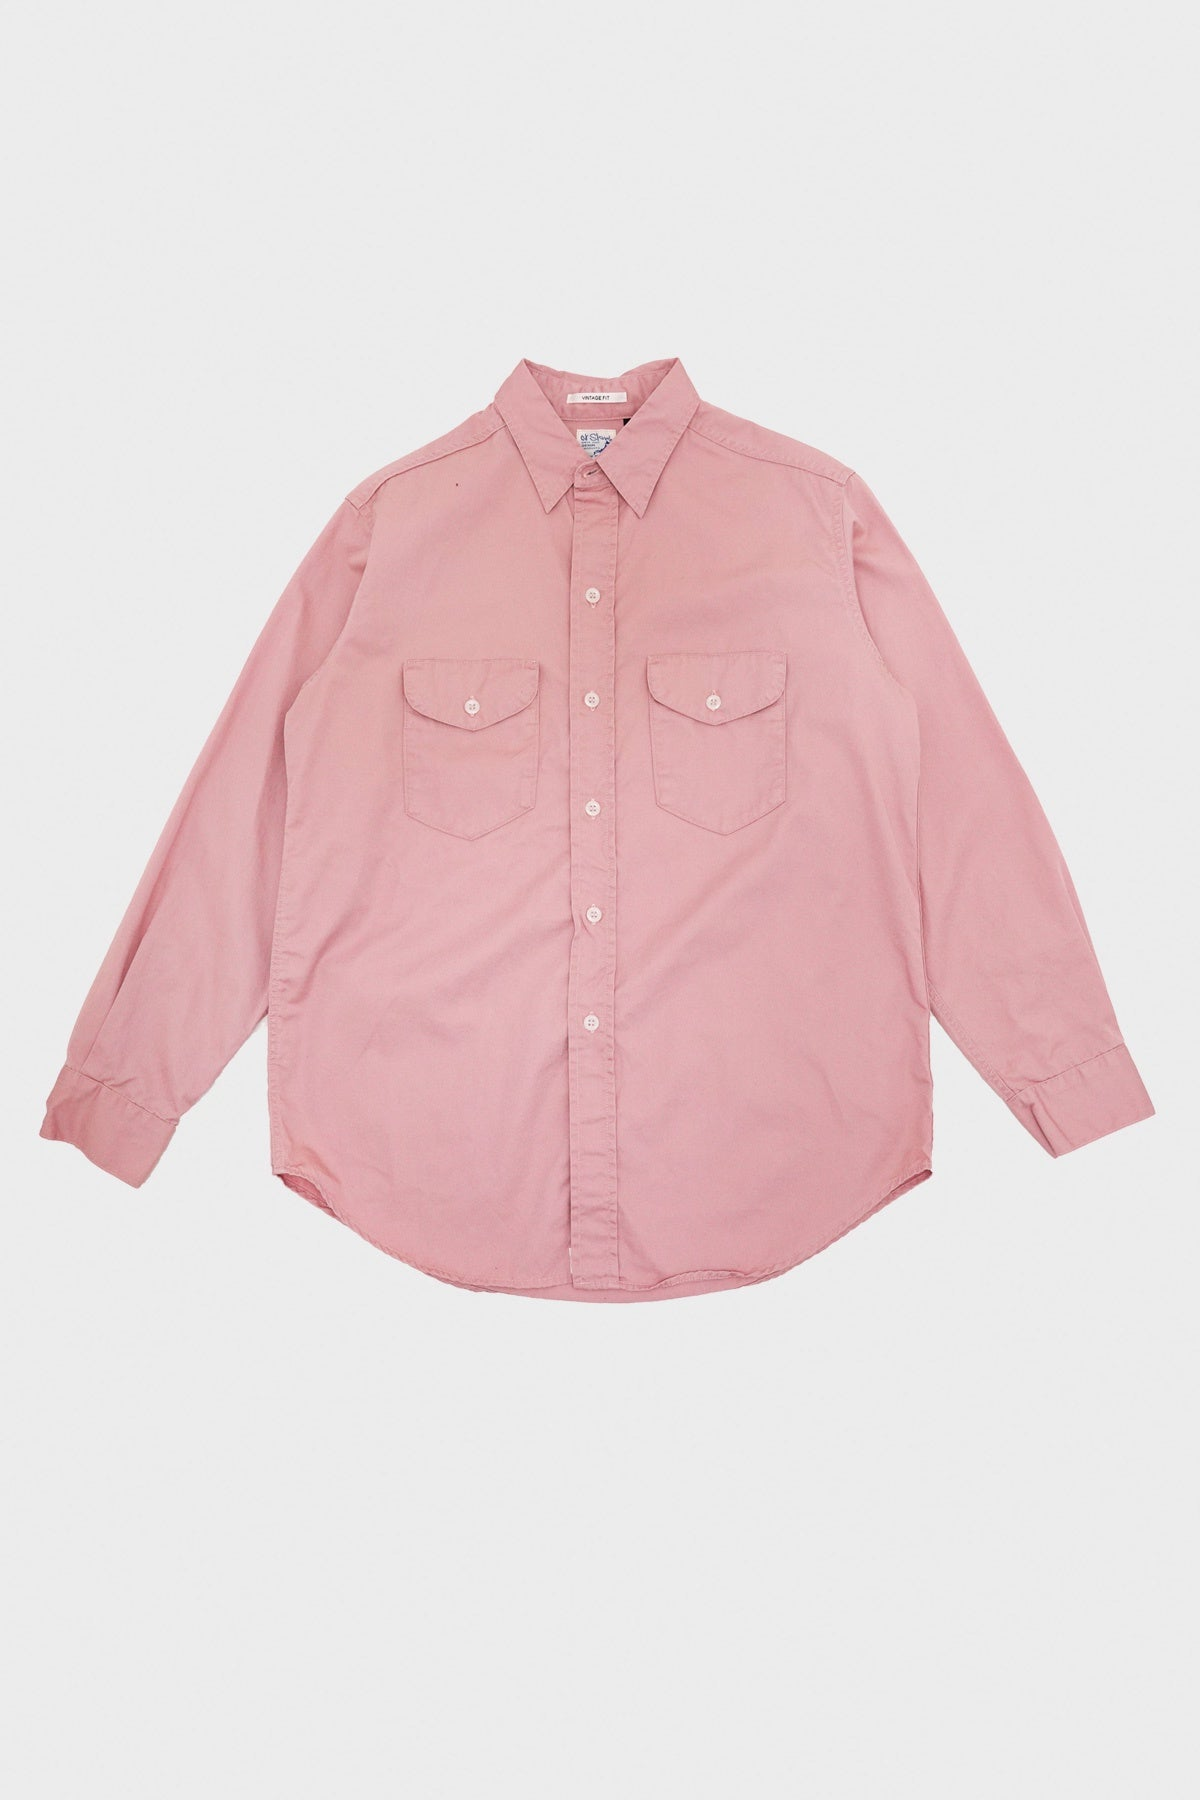 orslow Utility Work Shirt - Pink